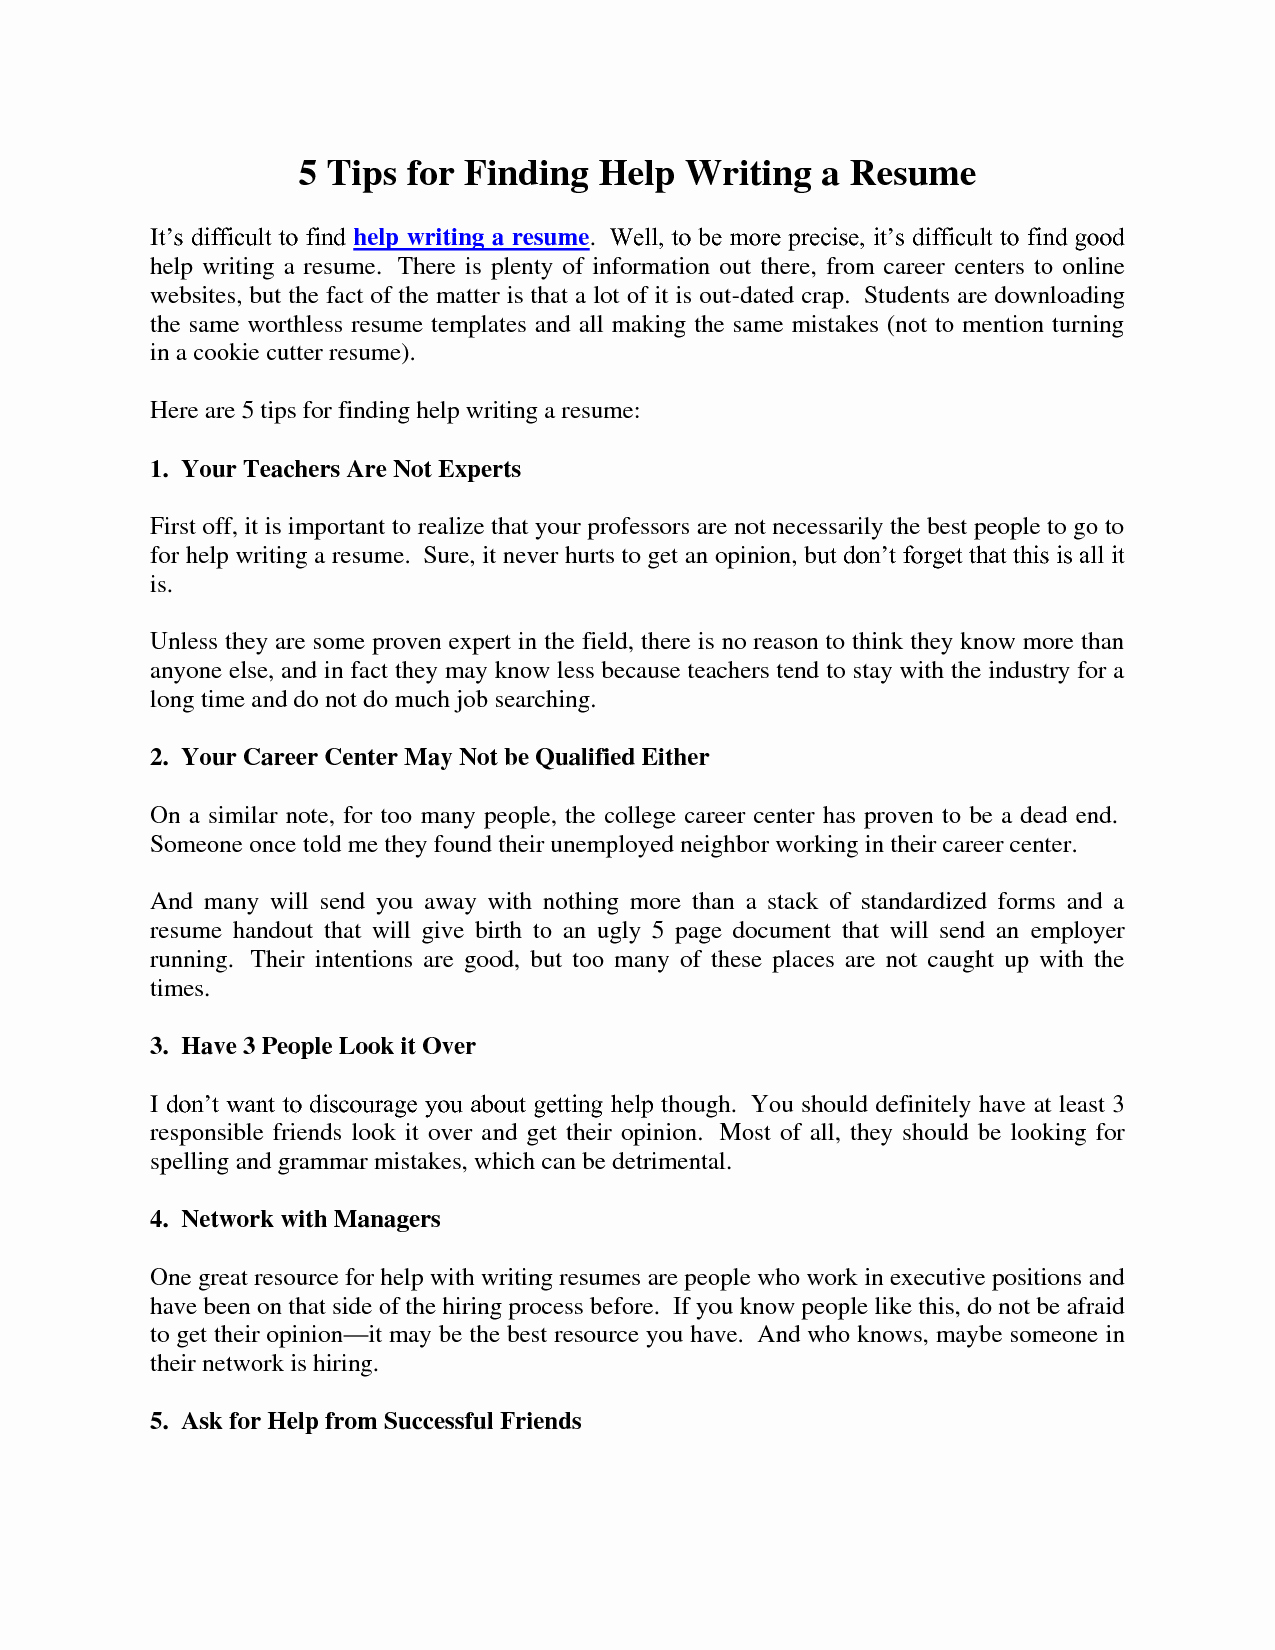 Resume Writing Professionals Professional Popular How to